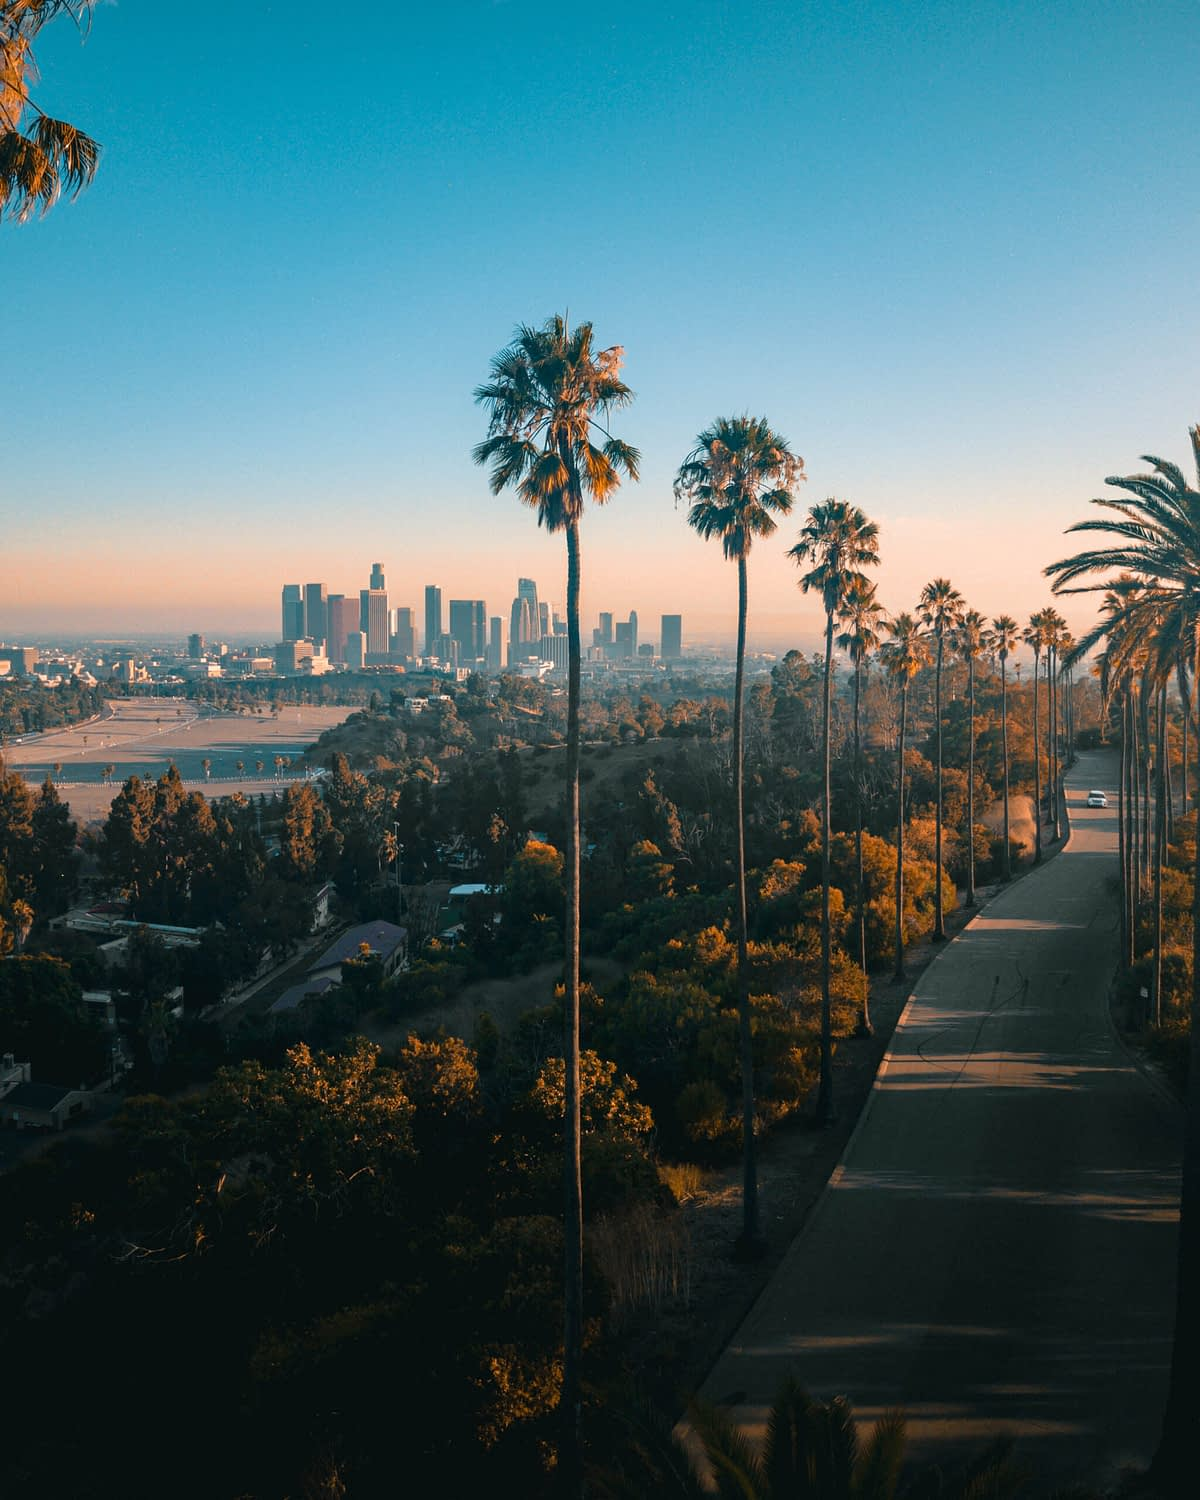 palm trees and a blue sky in los angeles